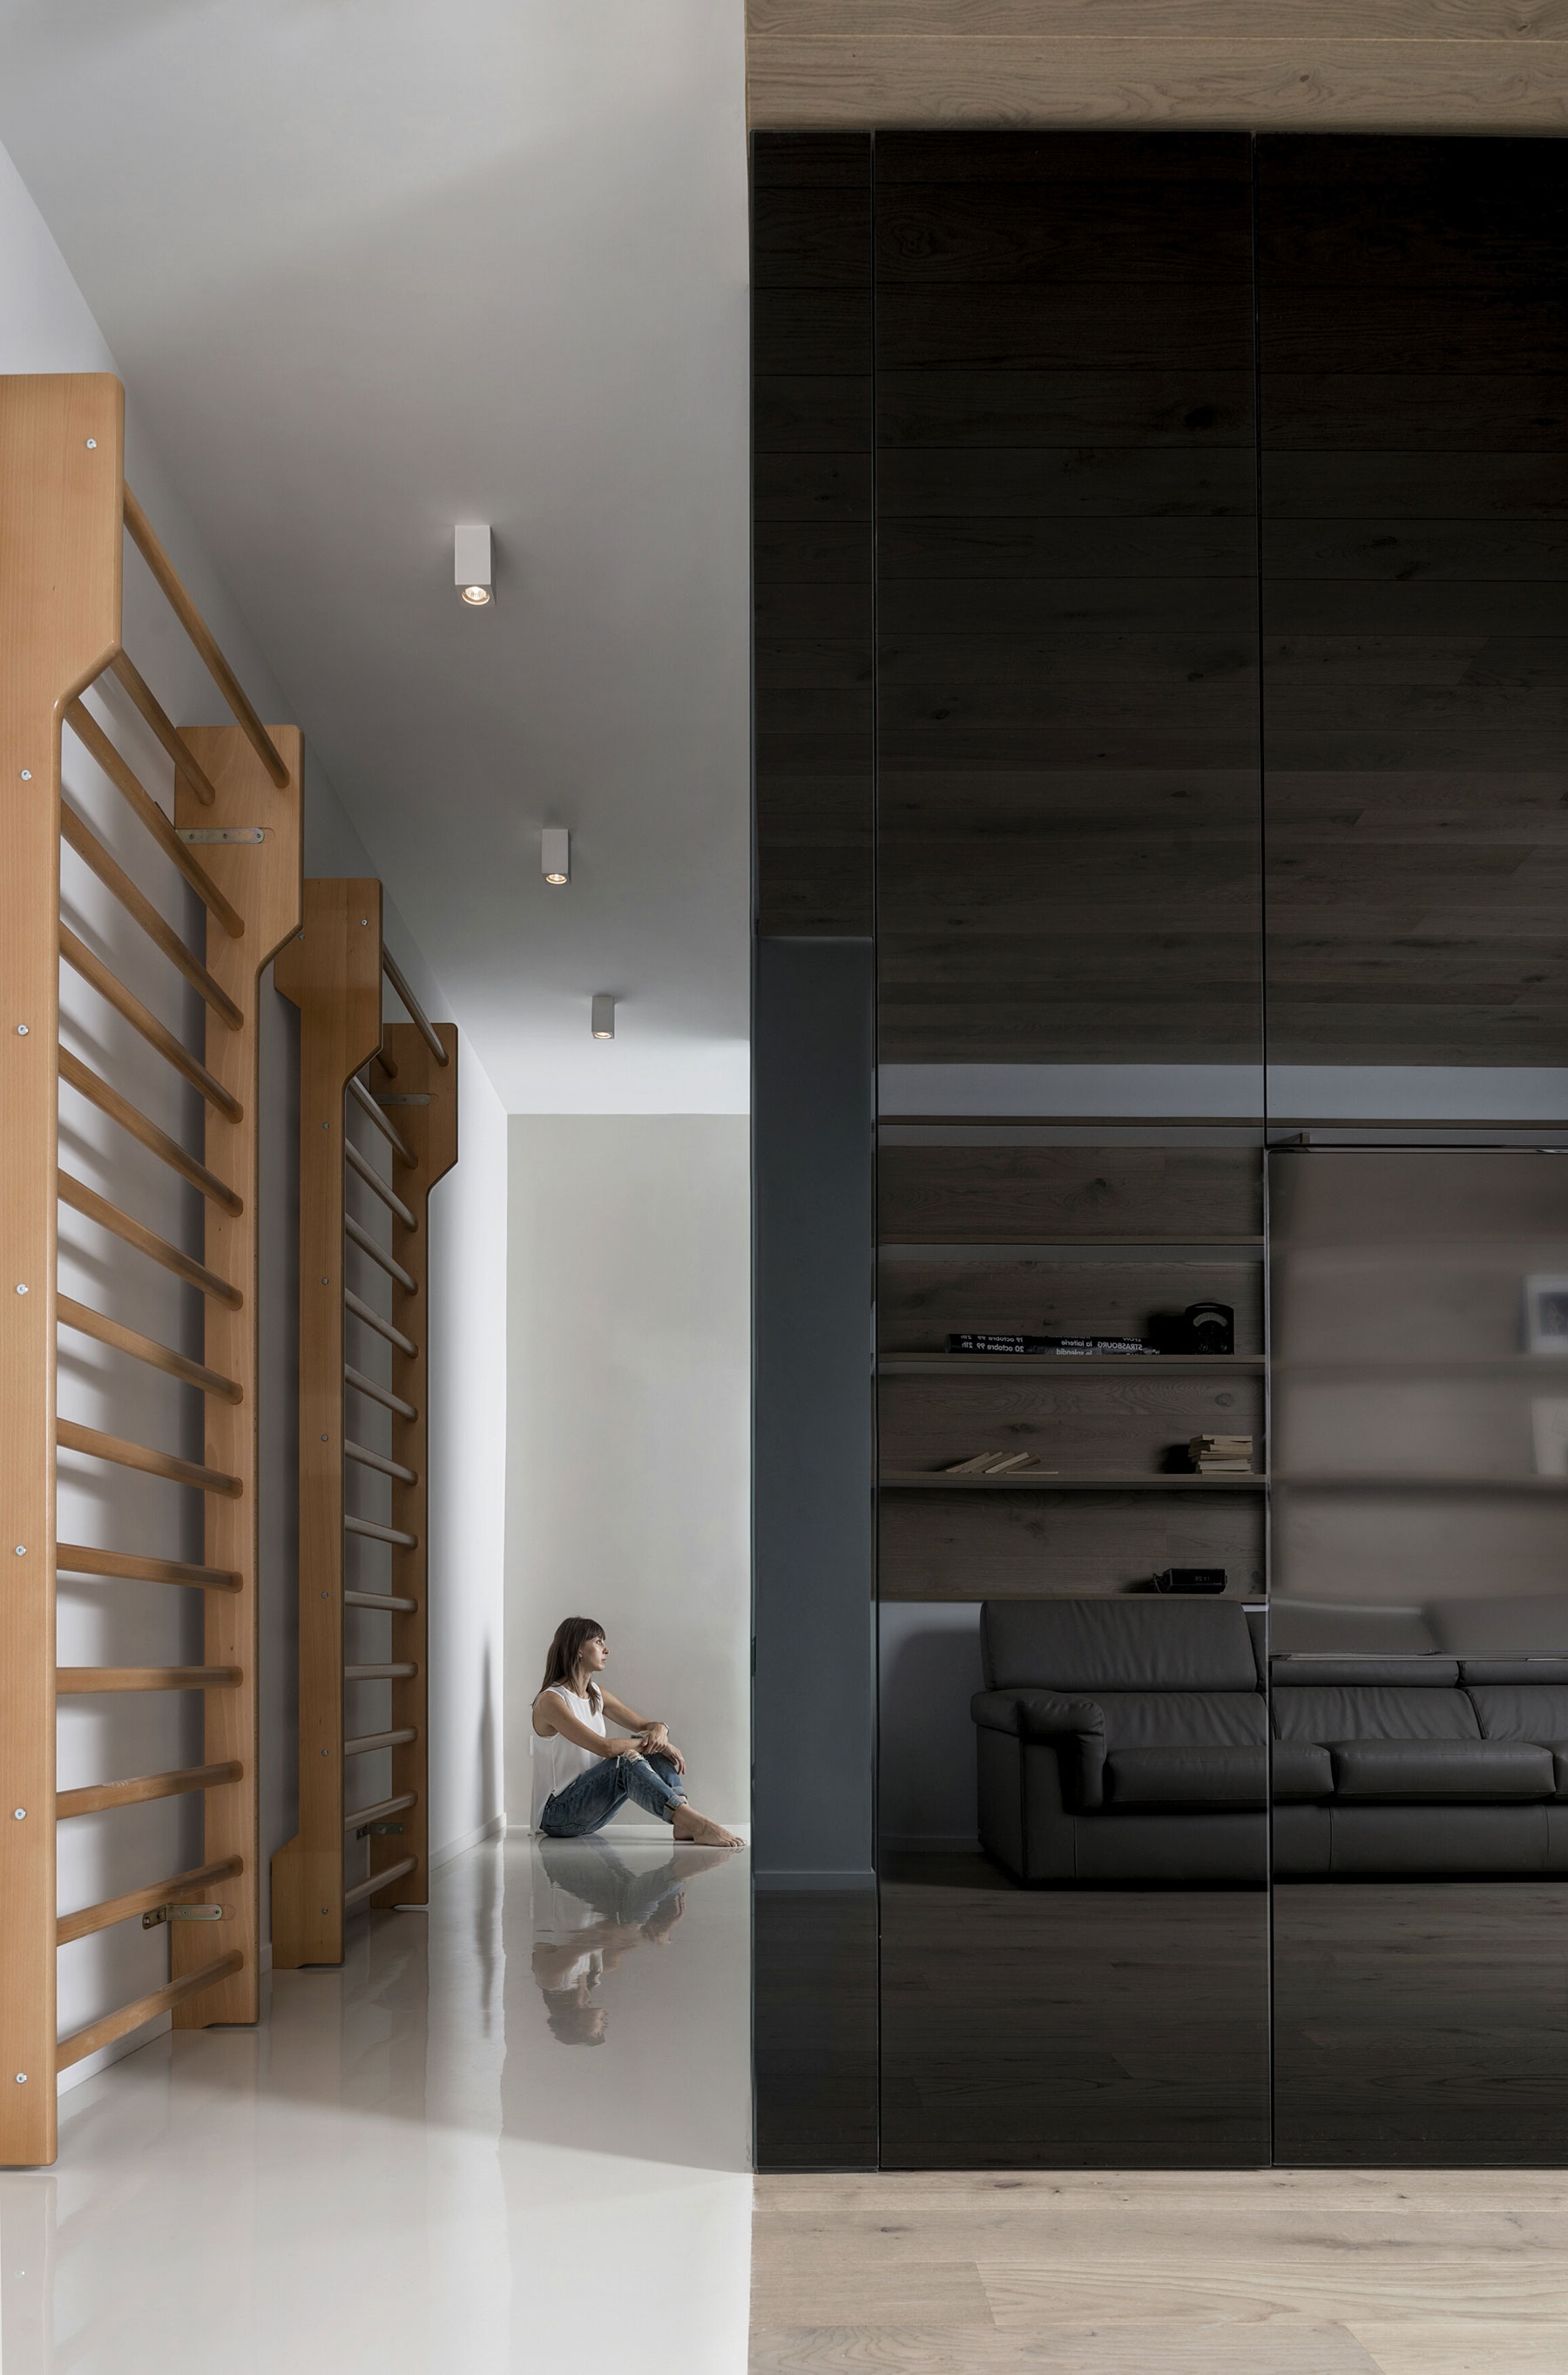 The Cube Apartment in Rome by Noses Architects-02